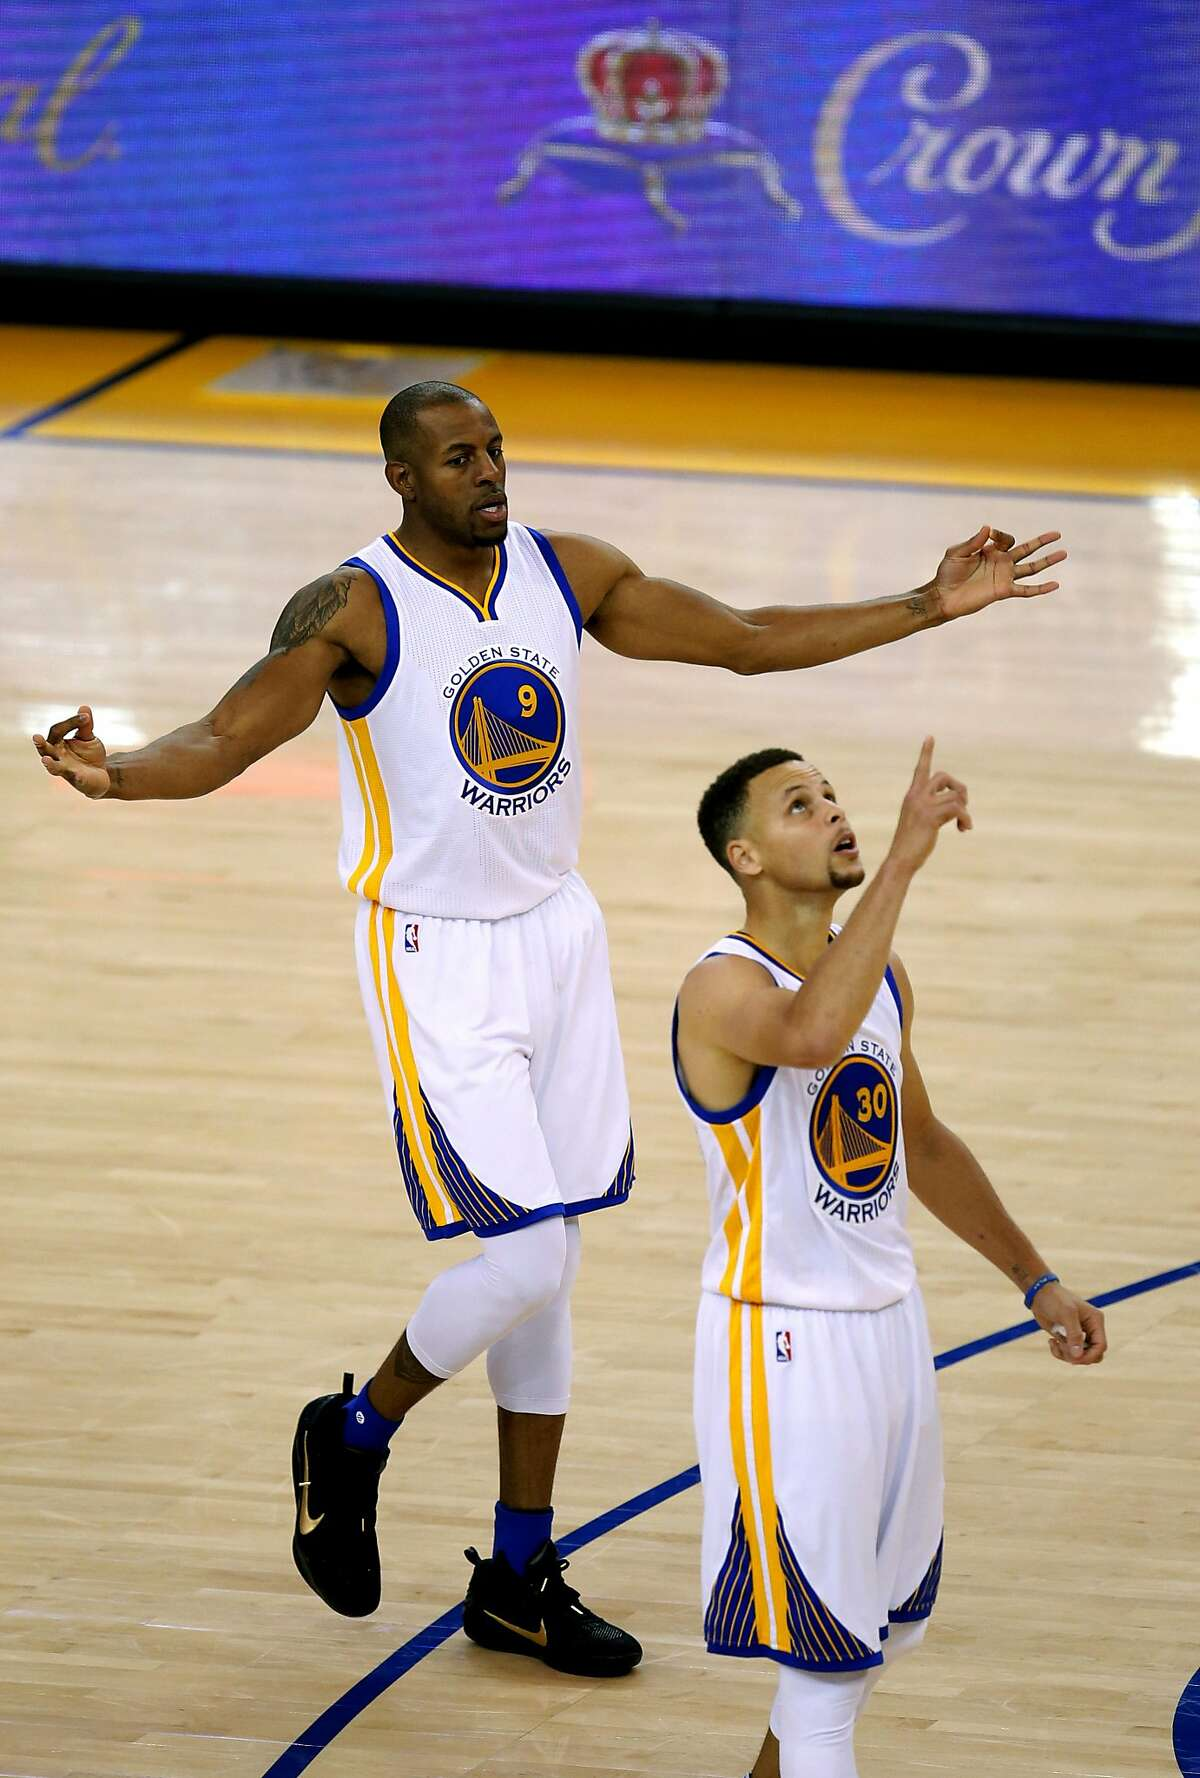 Warriors' Andre Iguodala, (9) celebrates with Stephen Curry, (30) afdter his fifth 3 pointer in the first quarter, as the Golden State Warriors take on the Memphis Grizzlies at the Oracle Arena in Oakland, California on Wed. April 13, 2016.